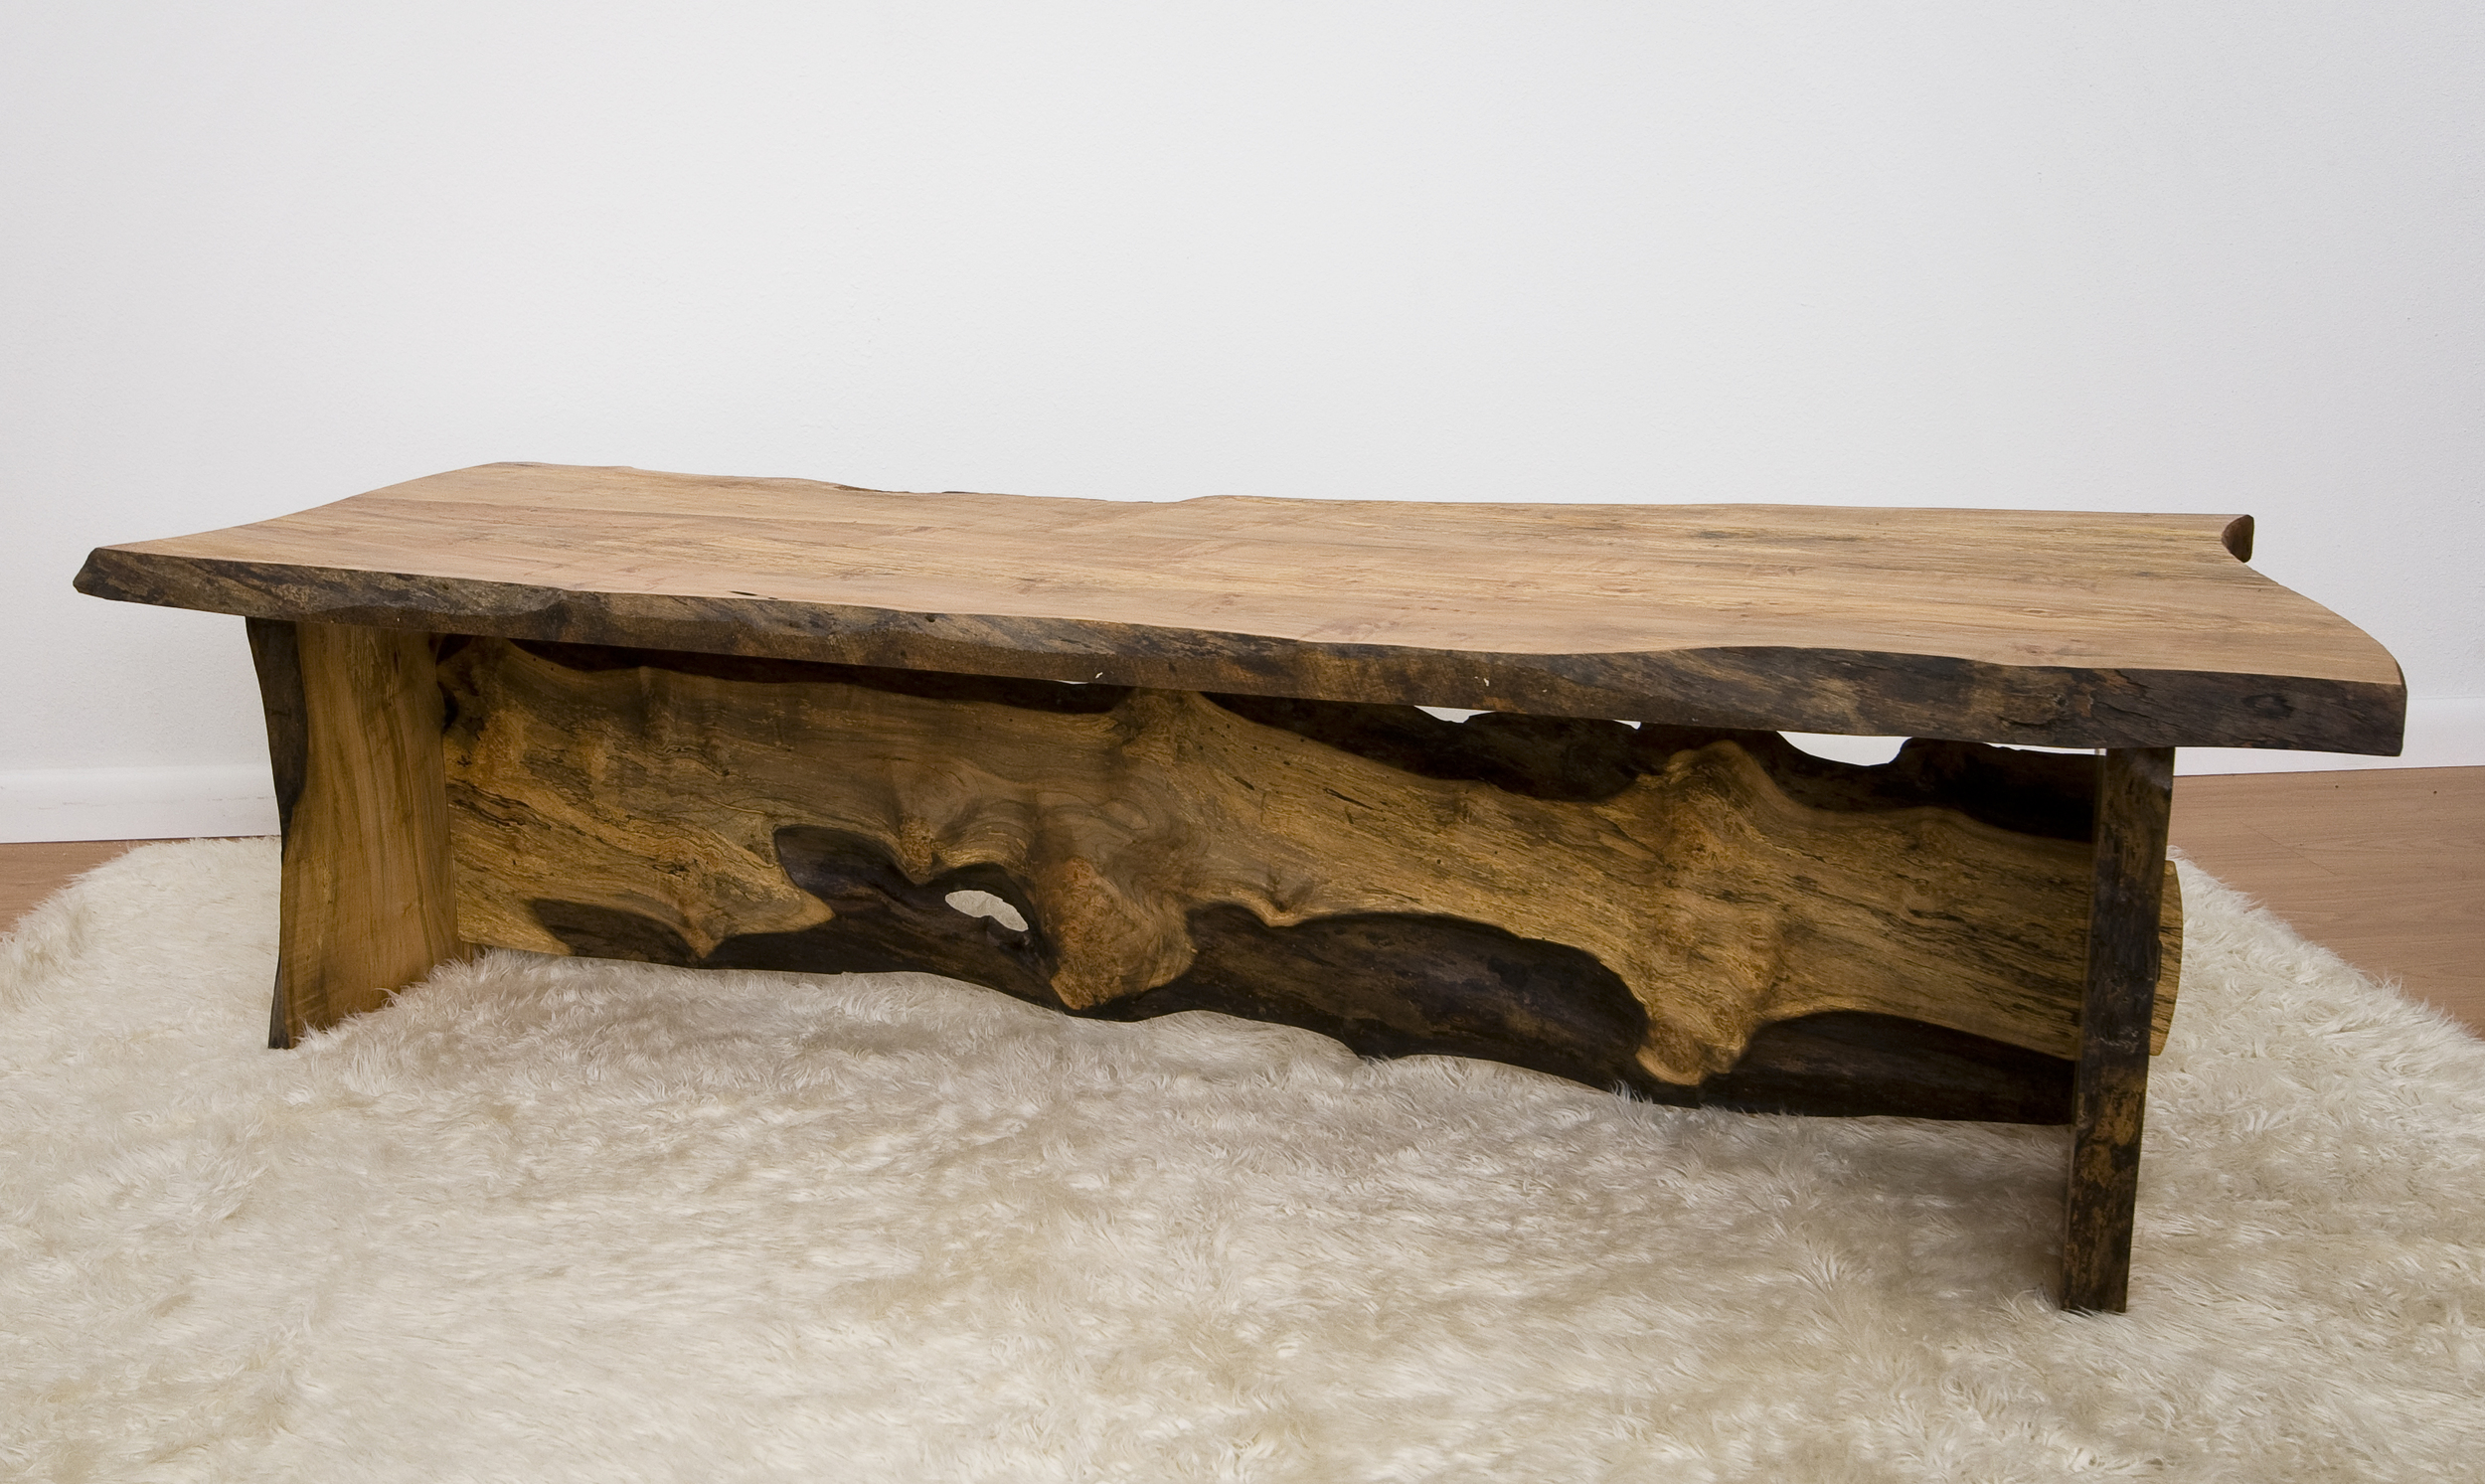 Spalted Maple Slab Table With Live Edge, Hand Rubbed Oil Finish